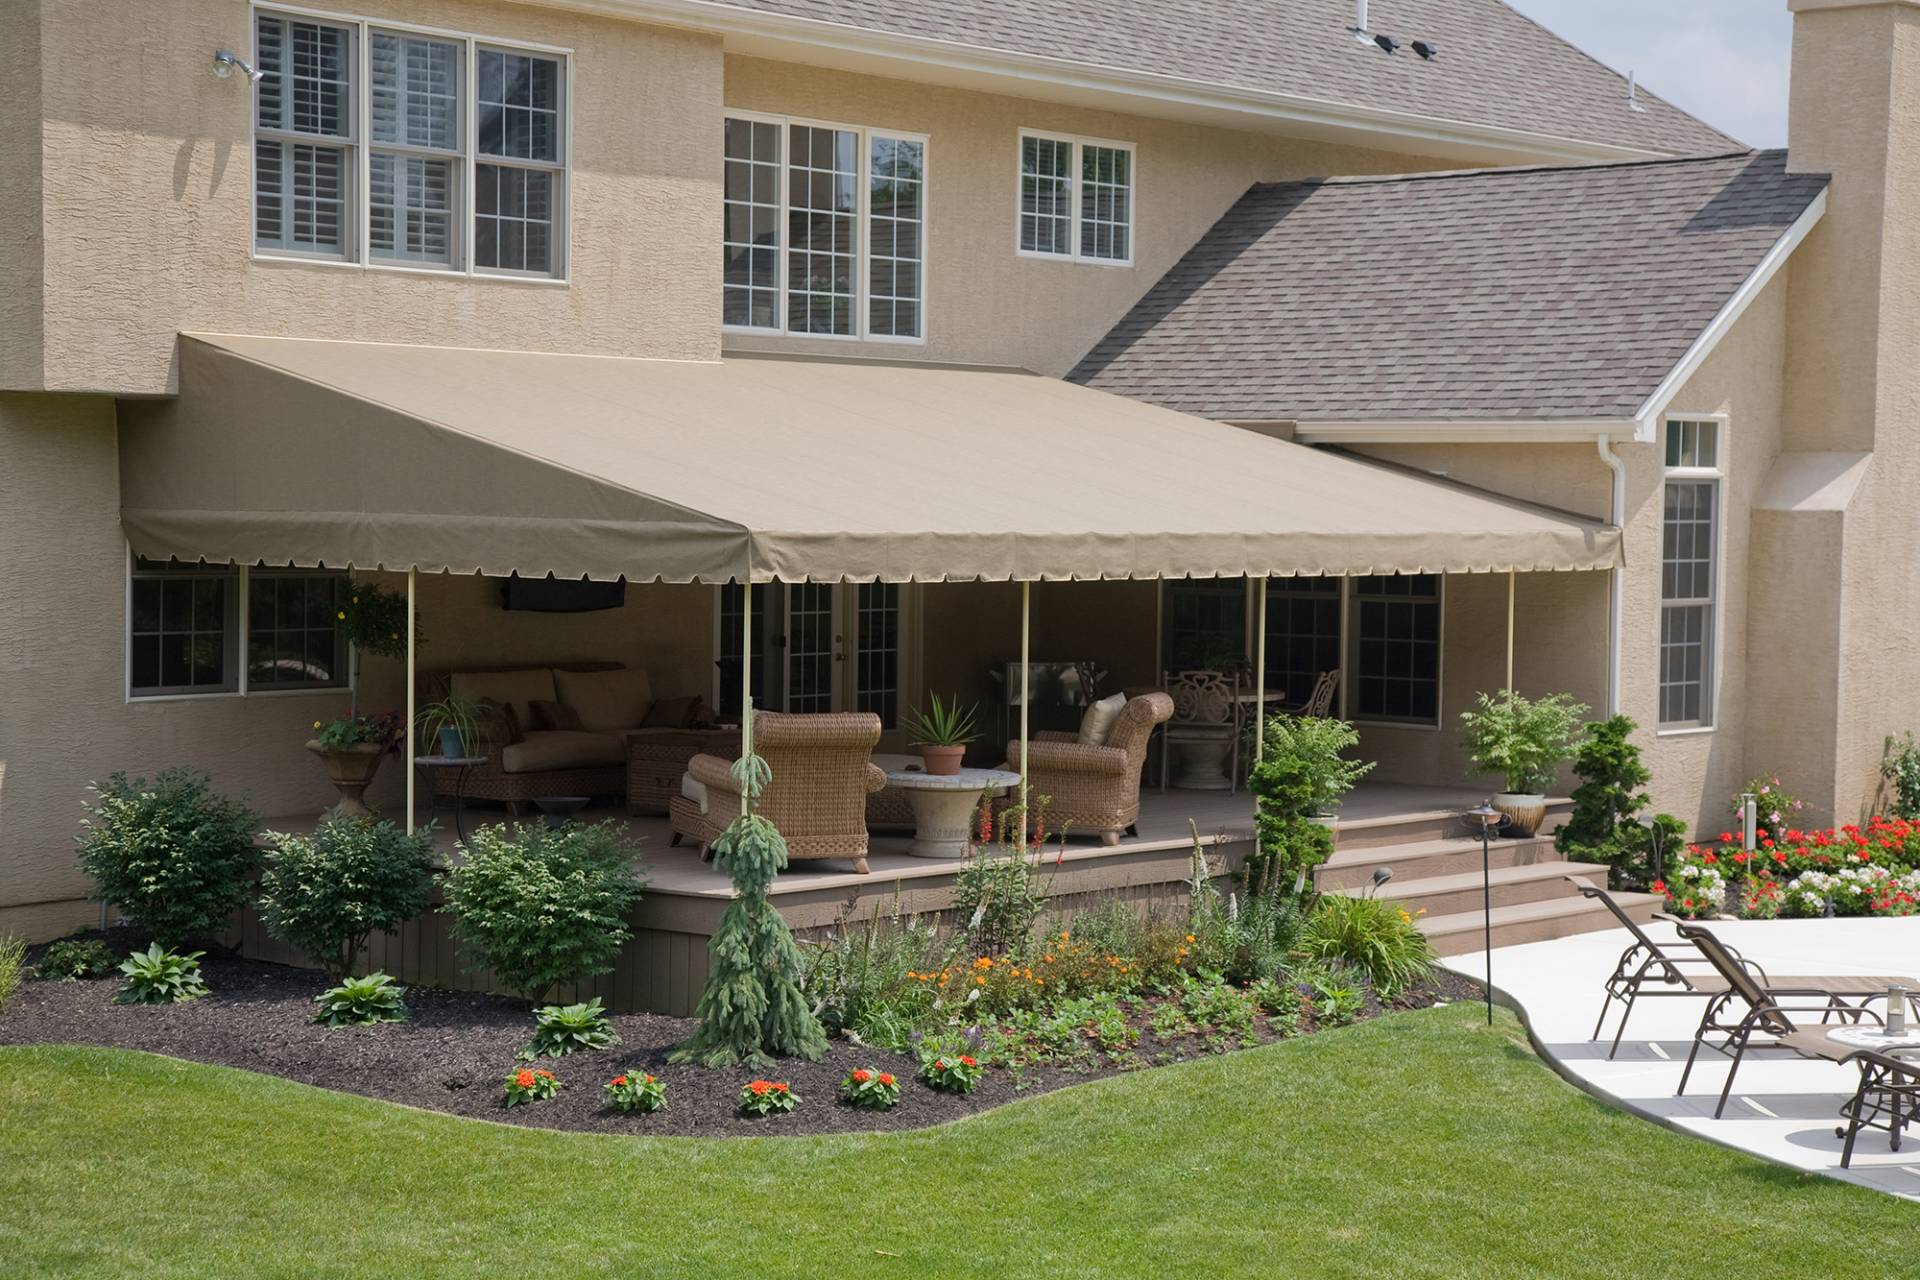 from residential awning awnings city custom htm built crescent copper